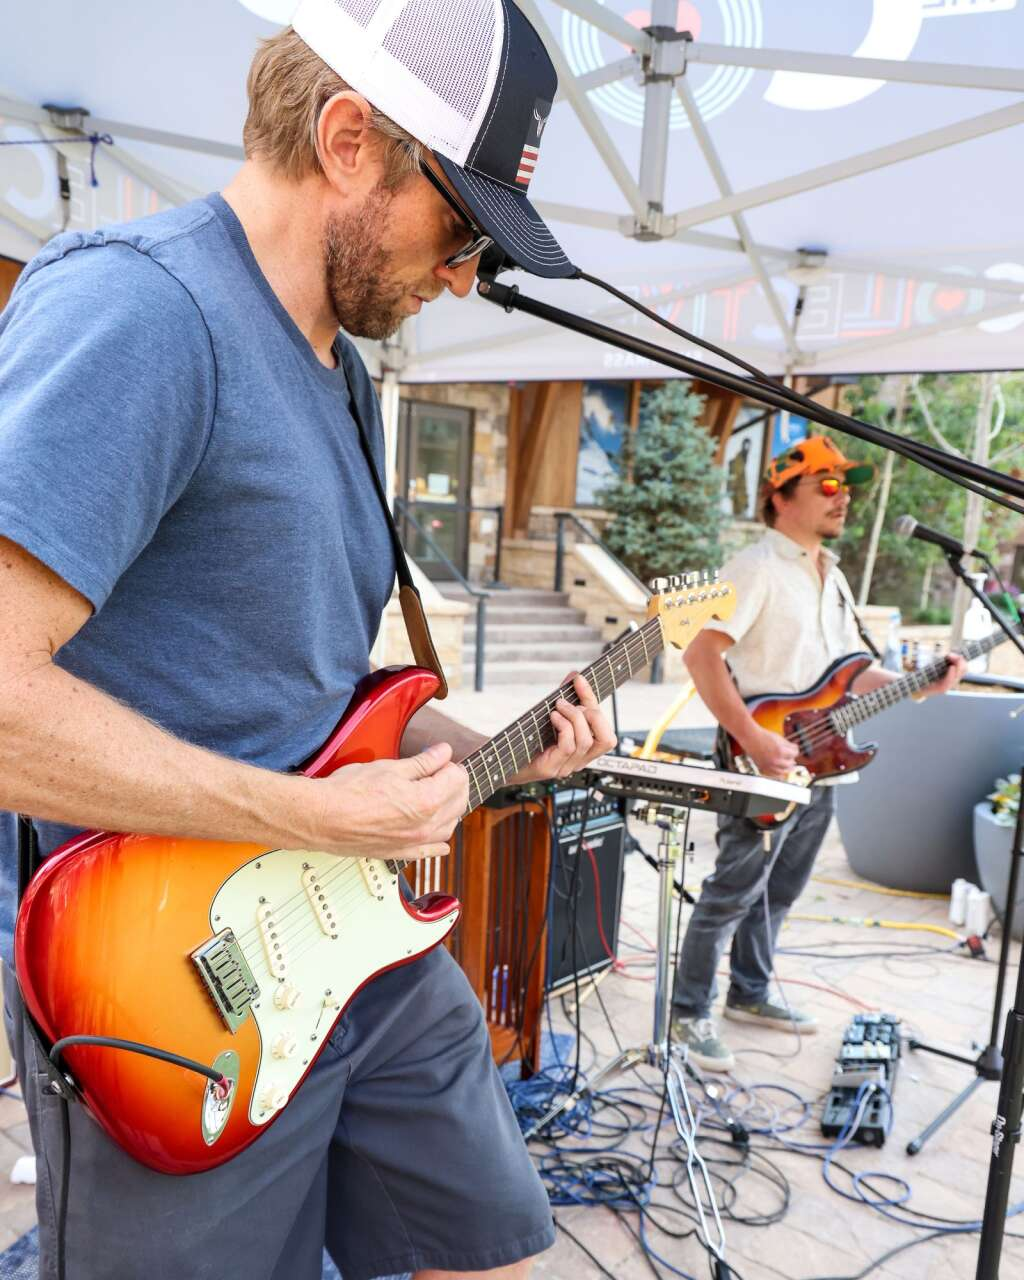 Andy Gunion, left, of the Snowmass-based band Nearly Now, performs in front of The Collective on Saturday, July 10, 2021, in Snowmass Base Village. Photo by Austin Colbert/The Aspen Times.